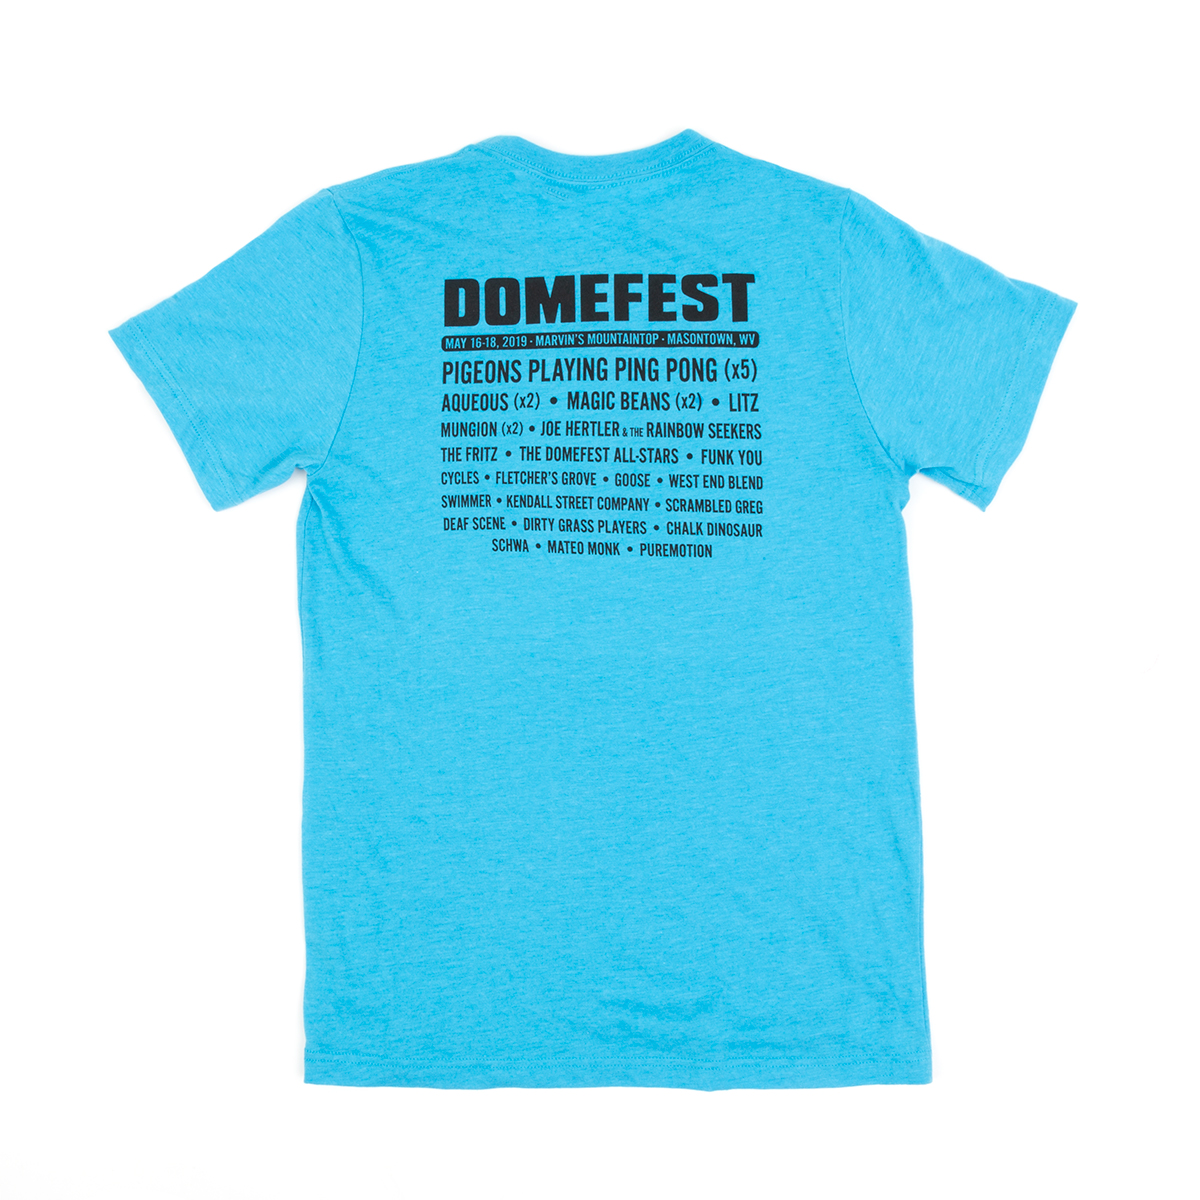 Domefest 2019 T-shirt